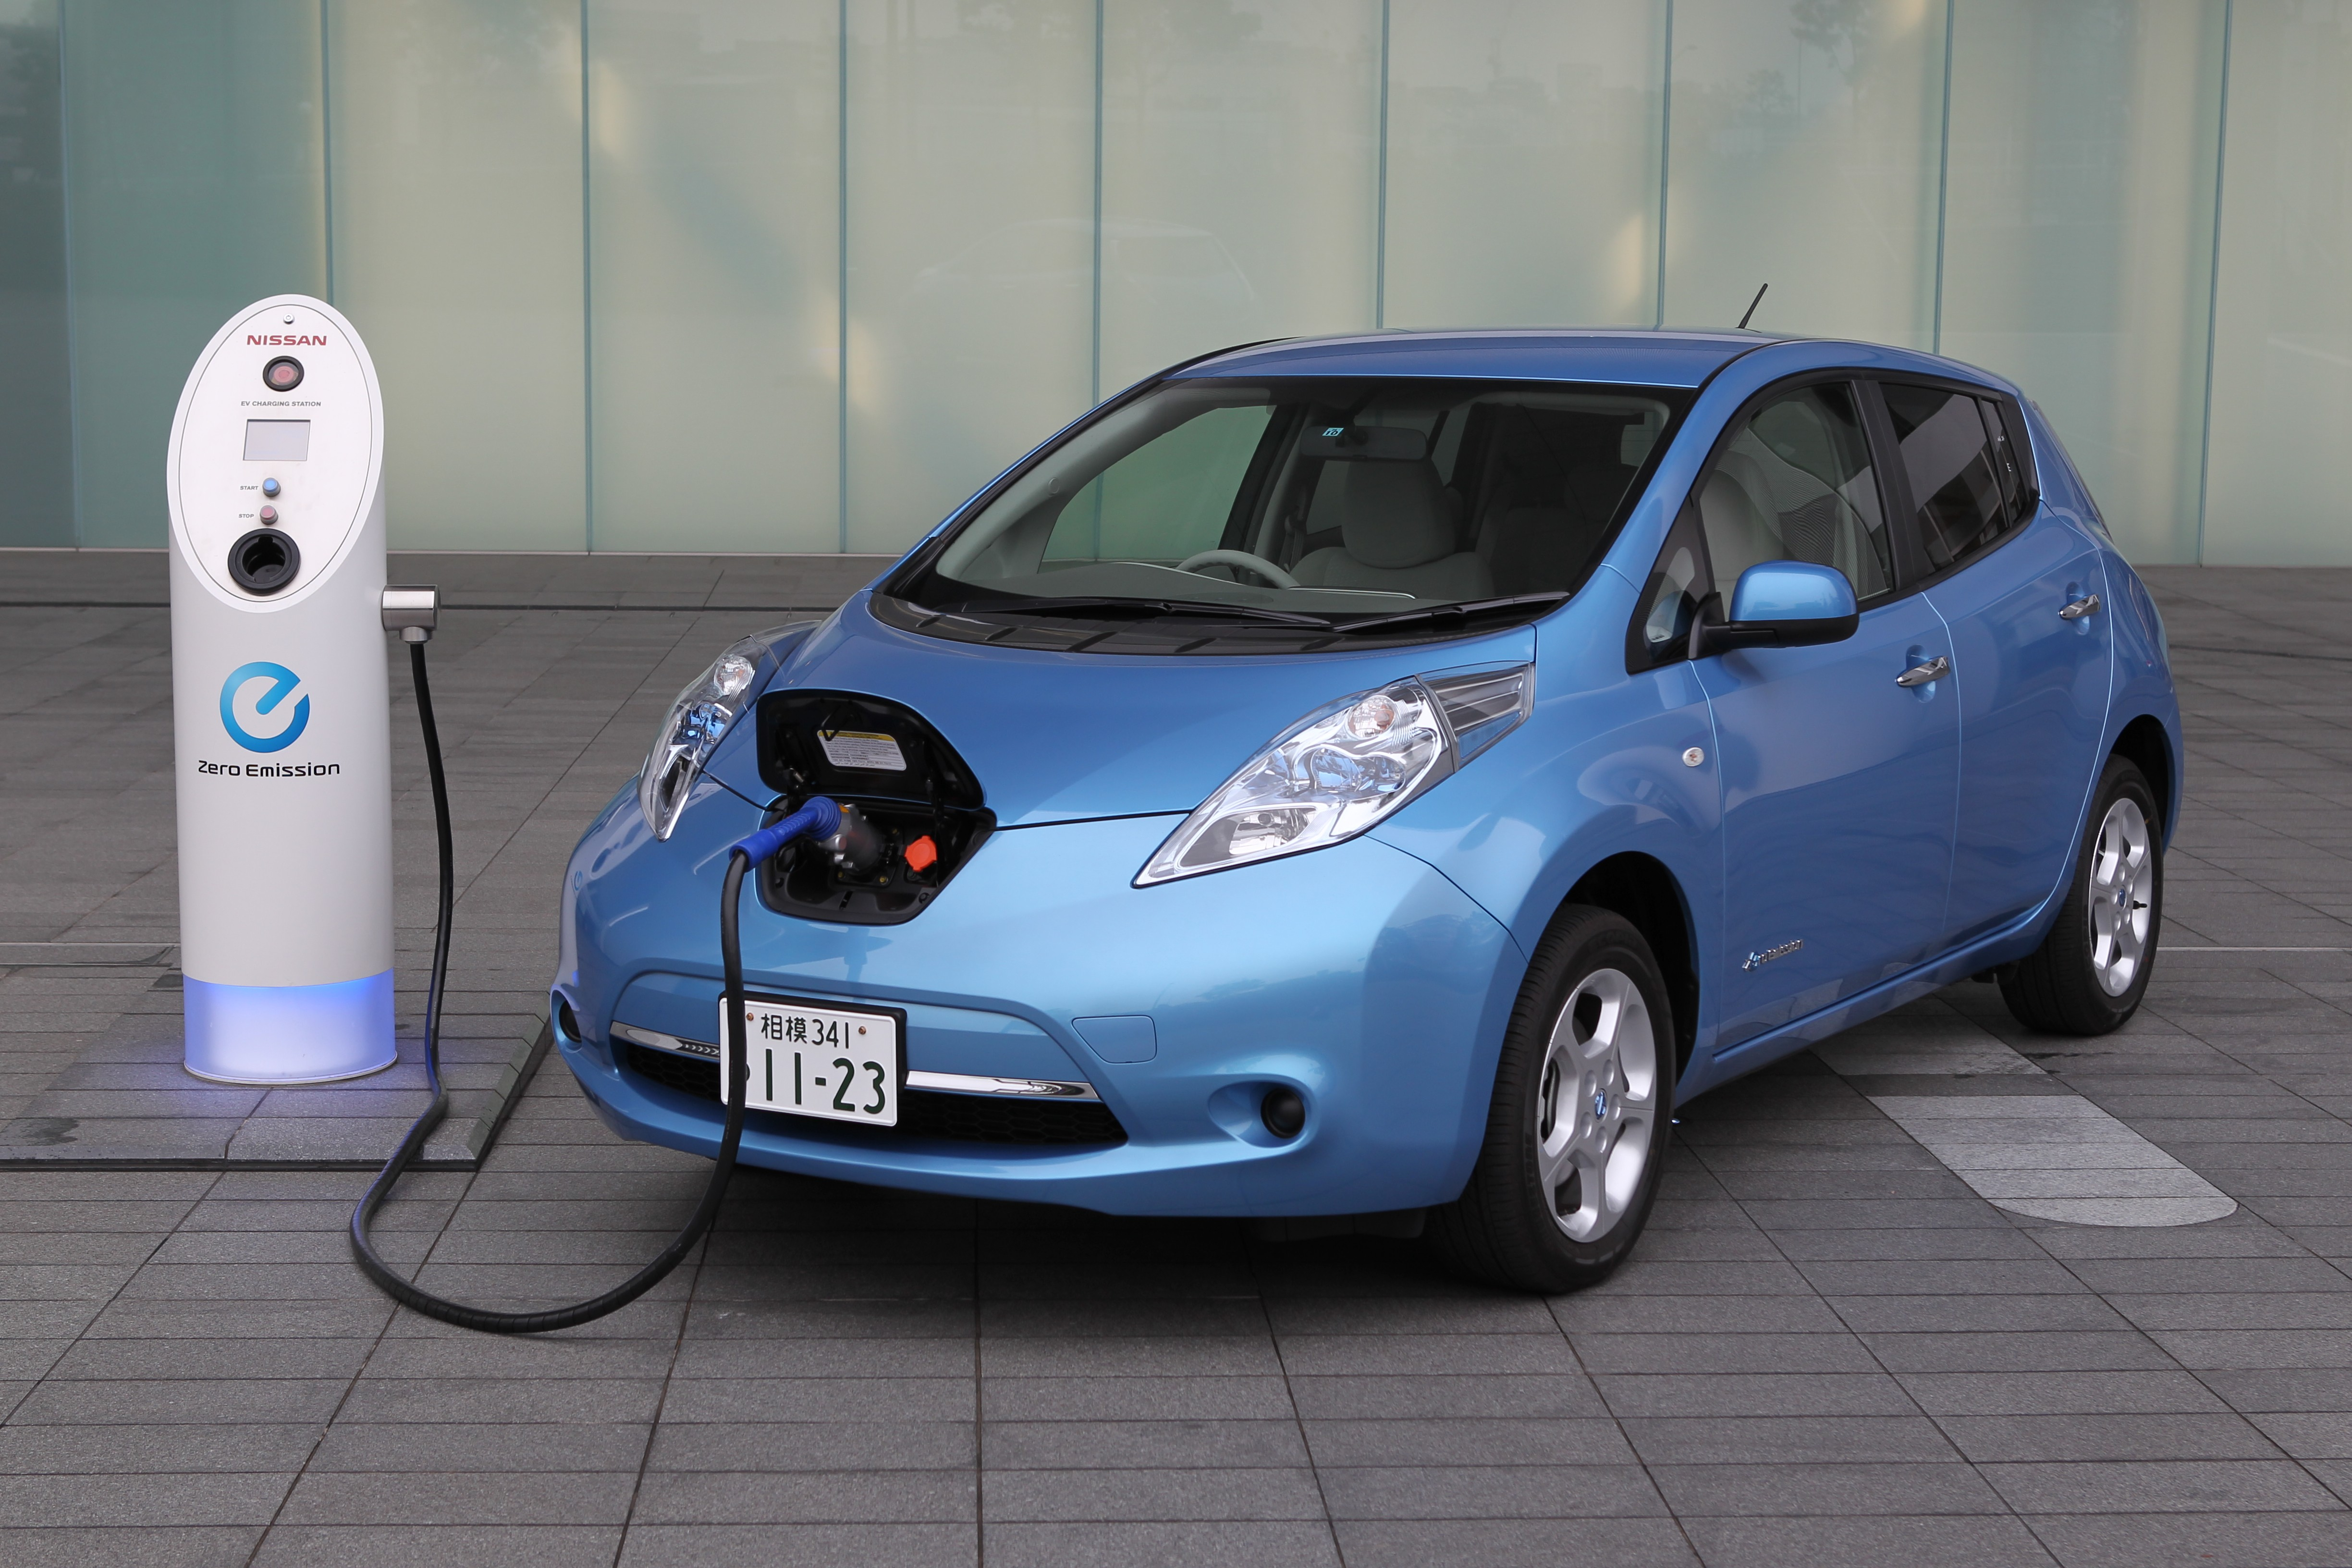 Wallpaper Nissan Leaf Electric Cars Nissan Charging City Cars